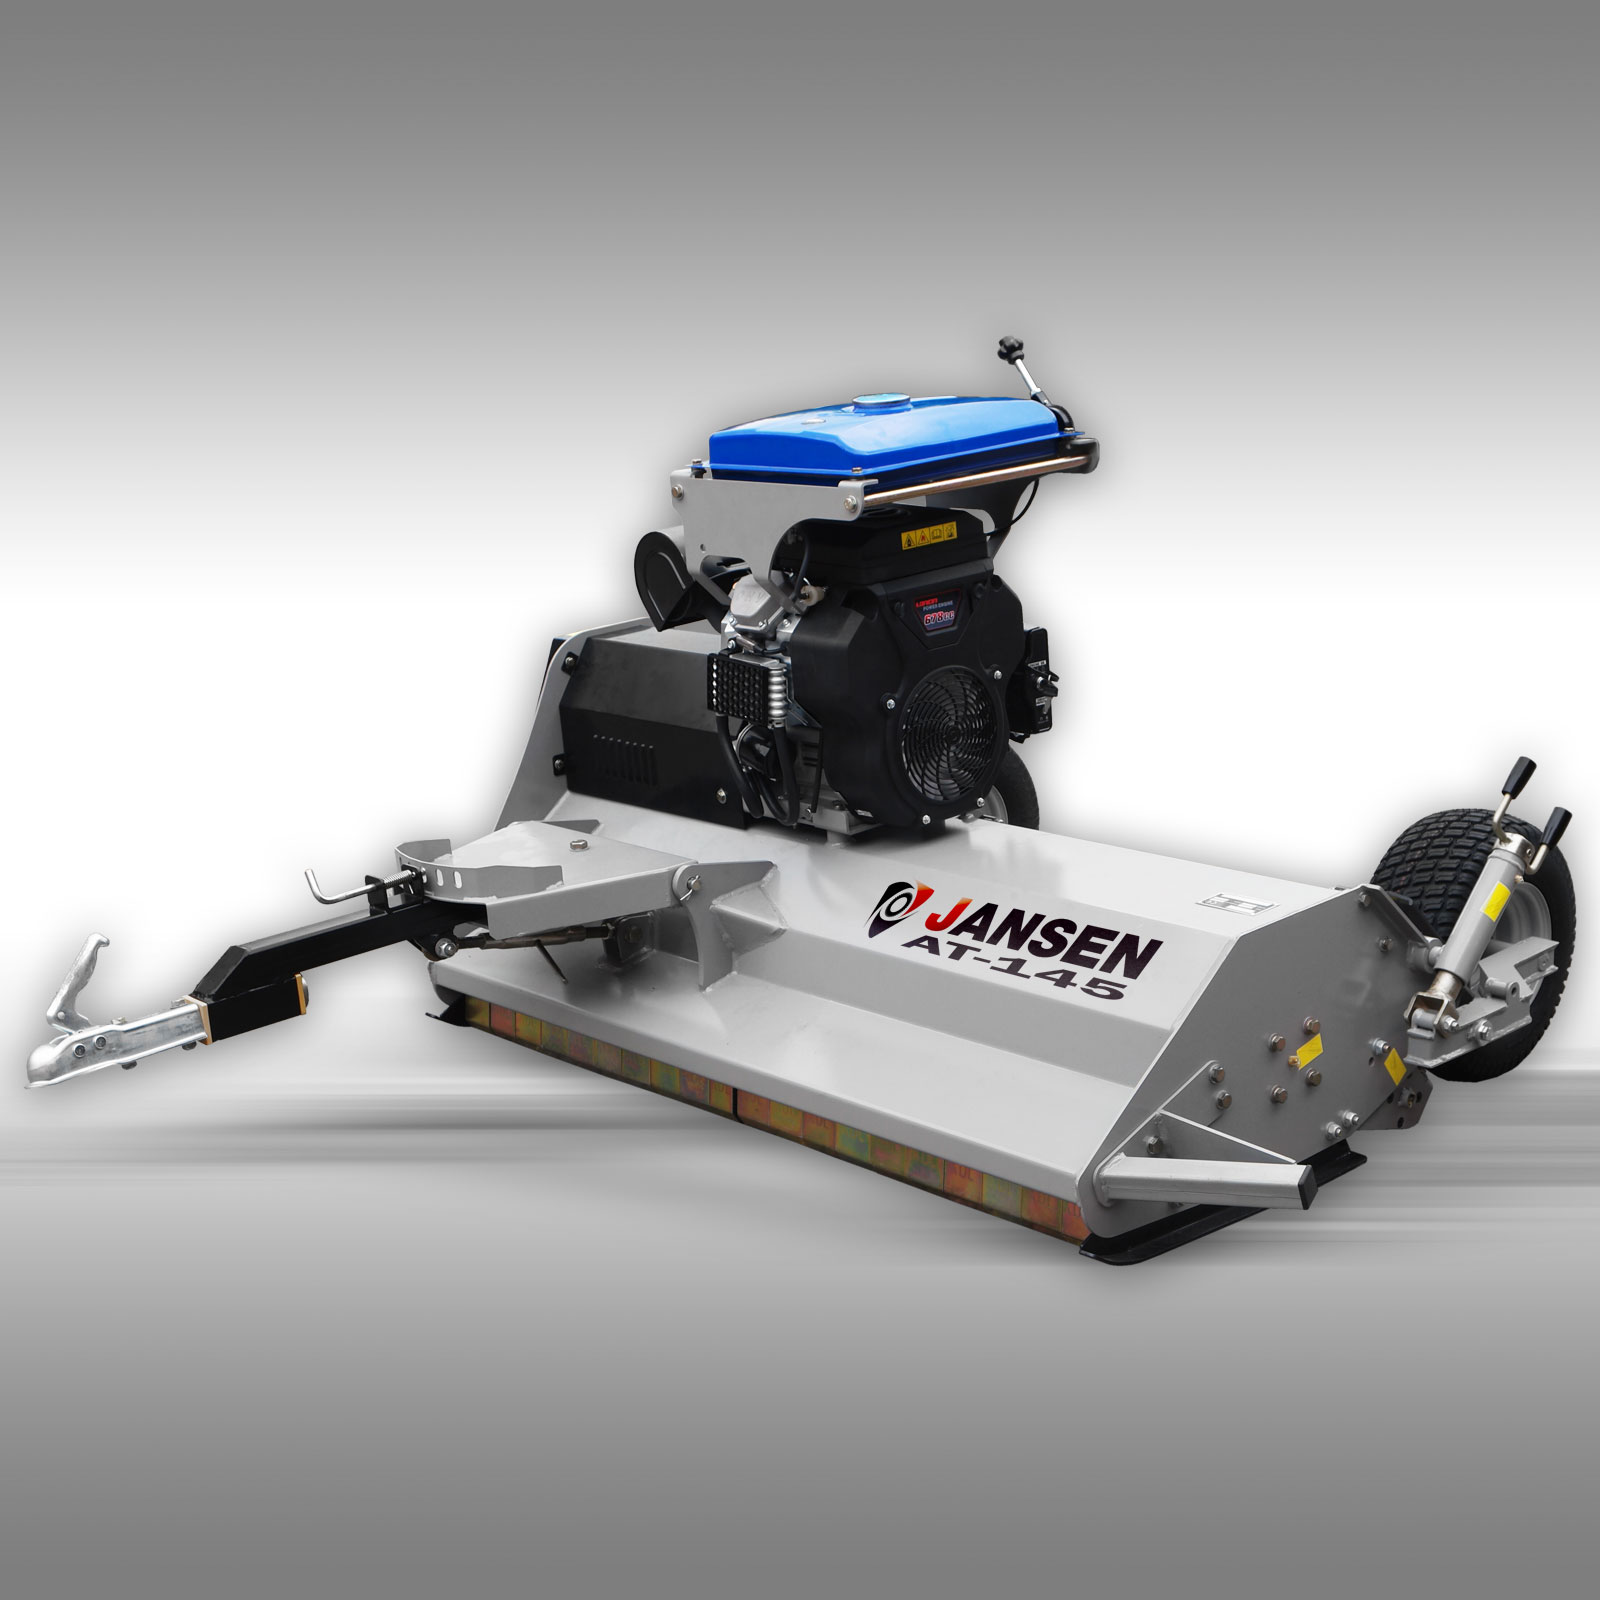 JANSEN AT-145 ATV flail mower with 22 HP petrol engine